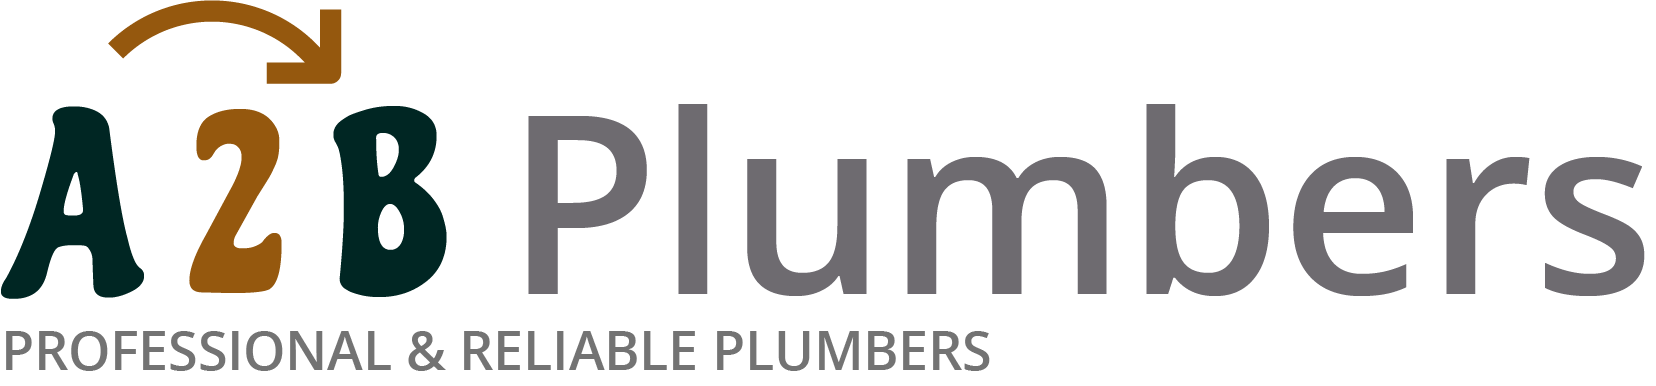 If you need a boiler installed, a radiator repaired or a leaking tap fixed, call us now - we provide services for properties in Nuneaton and the local area.